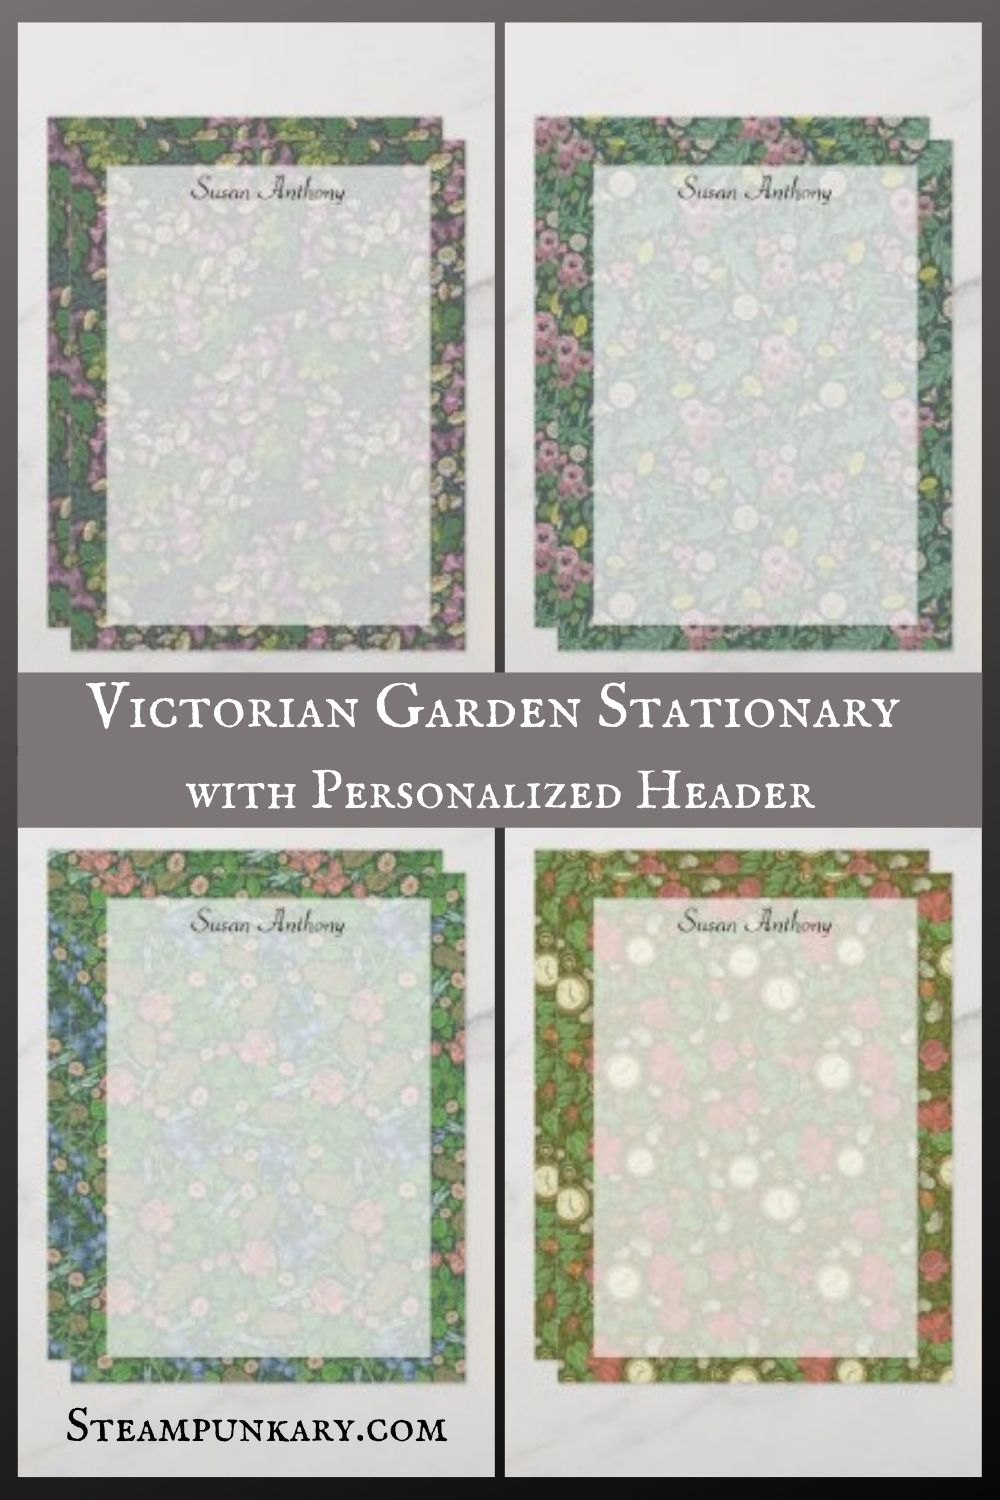 Victorian Garden Stationary with Personalized Header